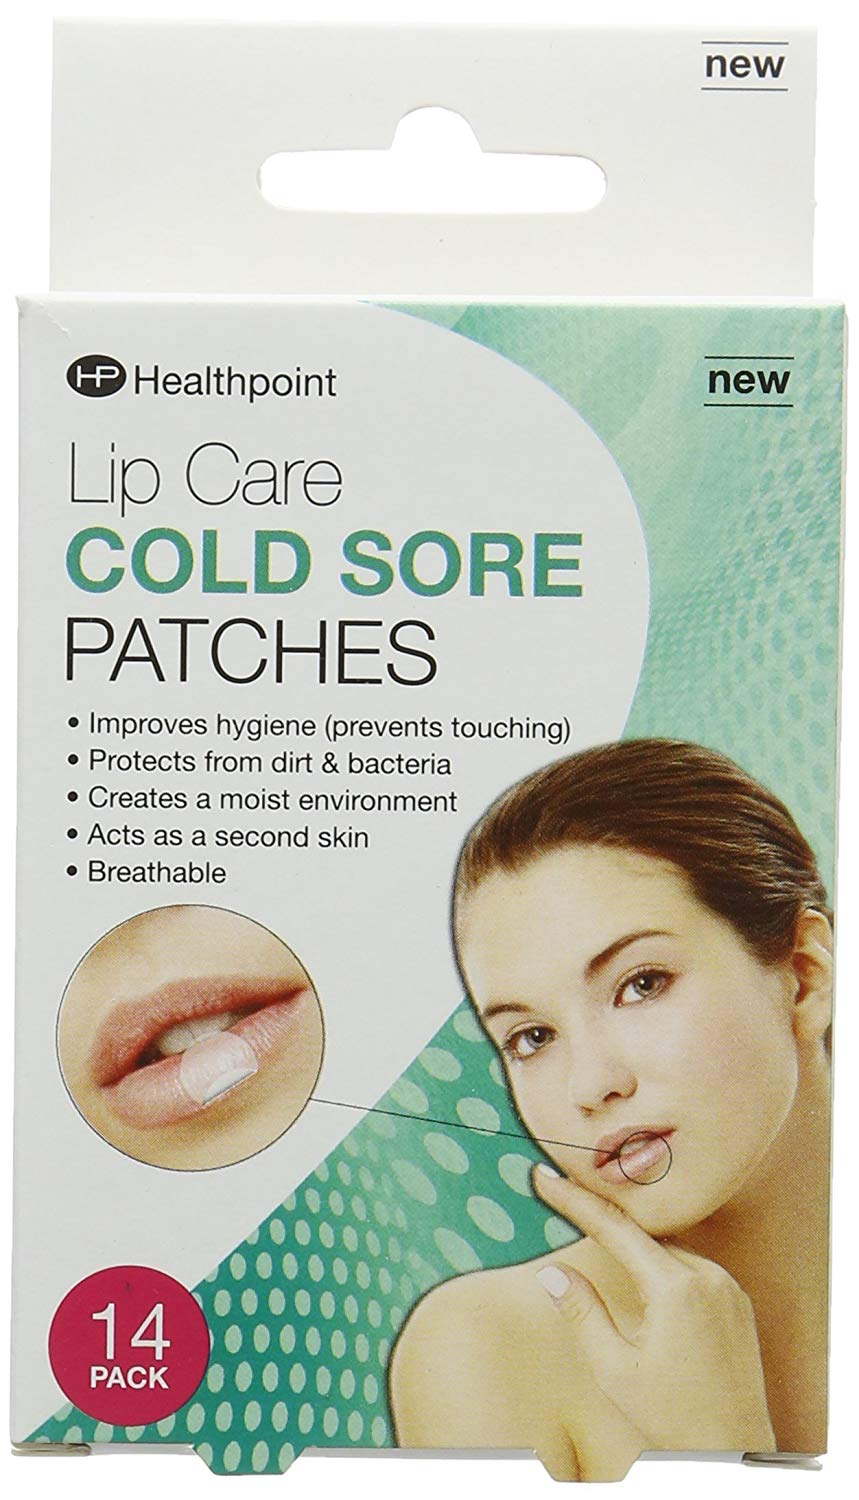 Healthpoint Lip Care Cold Sore Patches - 14 Pack